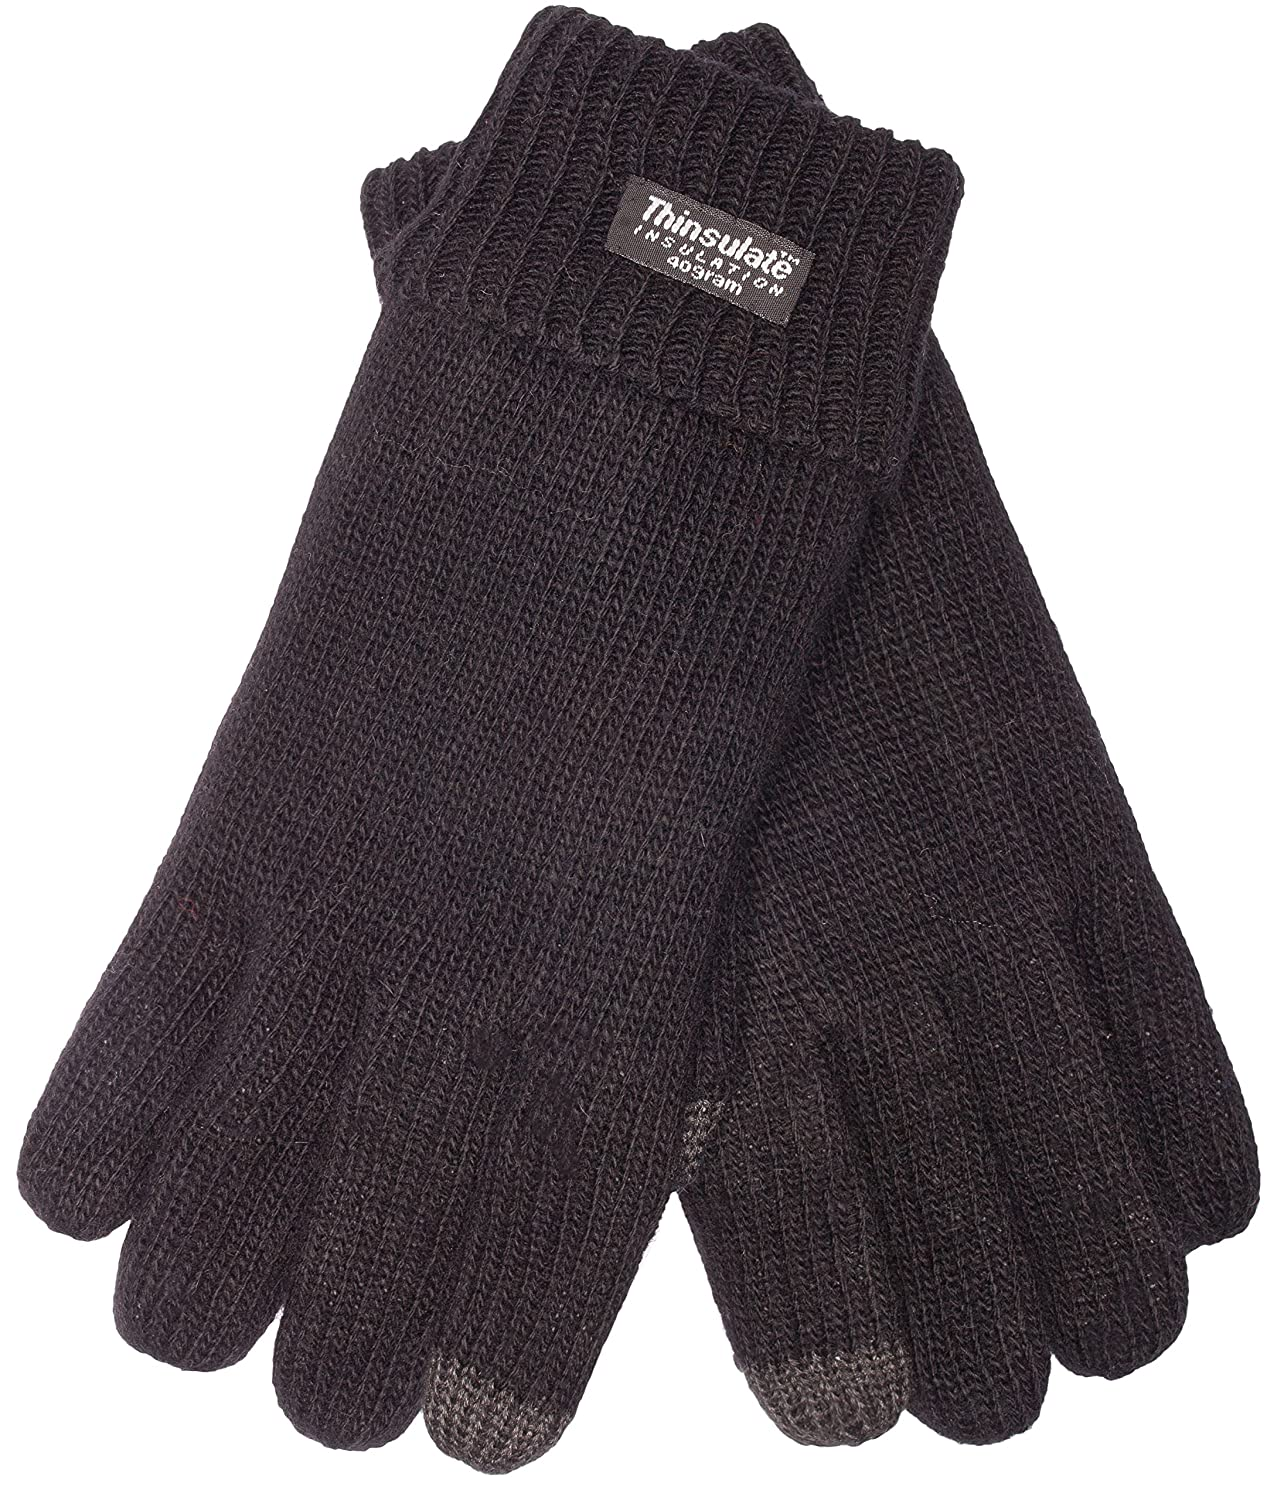 EEM ladies touchscreen gloves JETTE-IP with Thinsulate thermal lining 100% wool 2817LIP-ANS